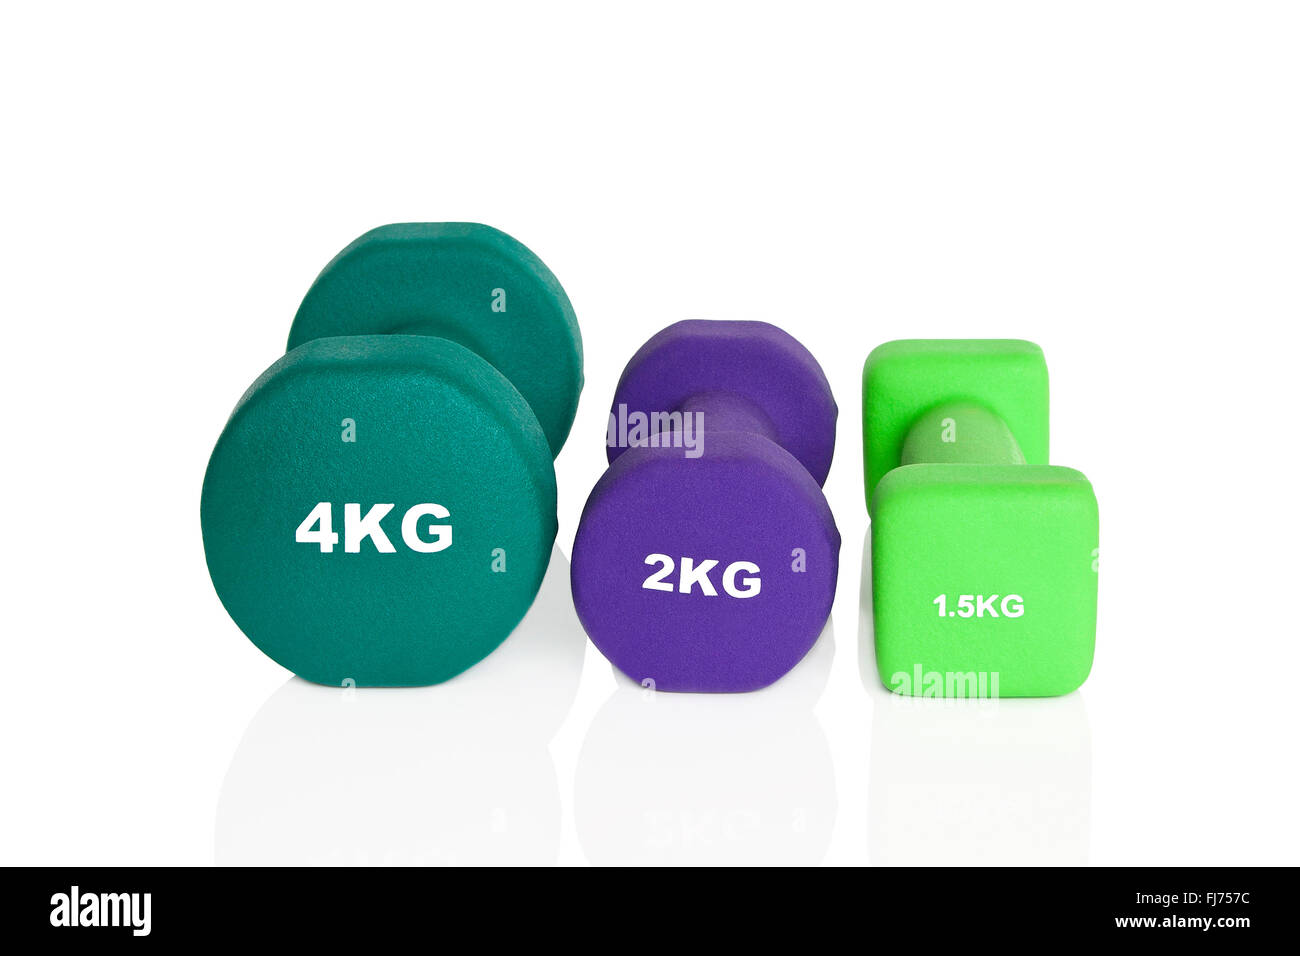 Green and purple dumbbells isolated on white background. Weights for a fitness training. - Stock Image